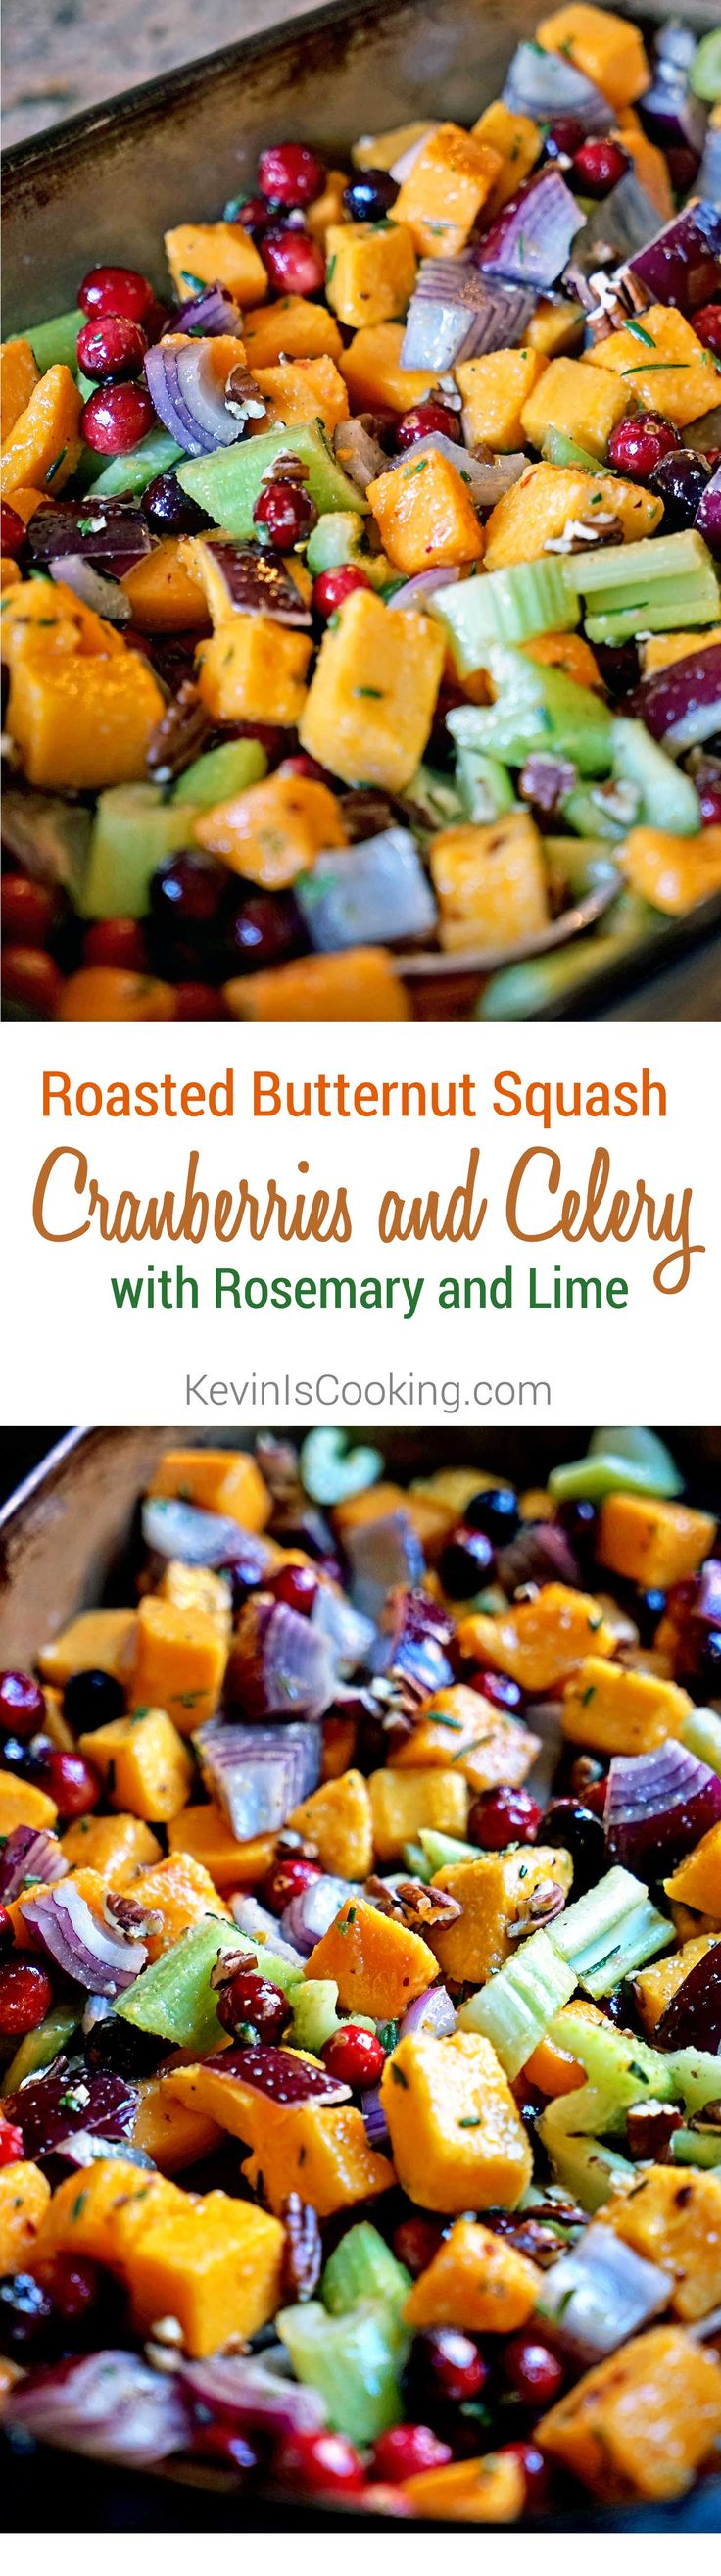 Roasted Butternut Squash Cranberries and Celery with Rosemary and Lime. www.keviniscooking.com